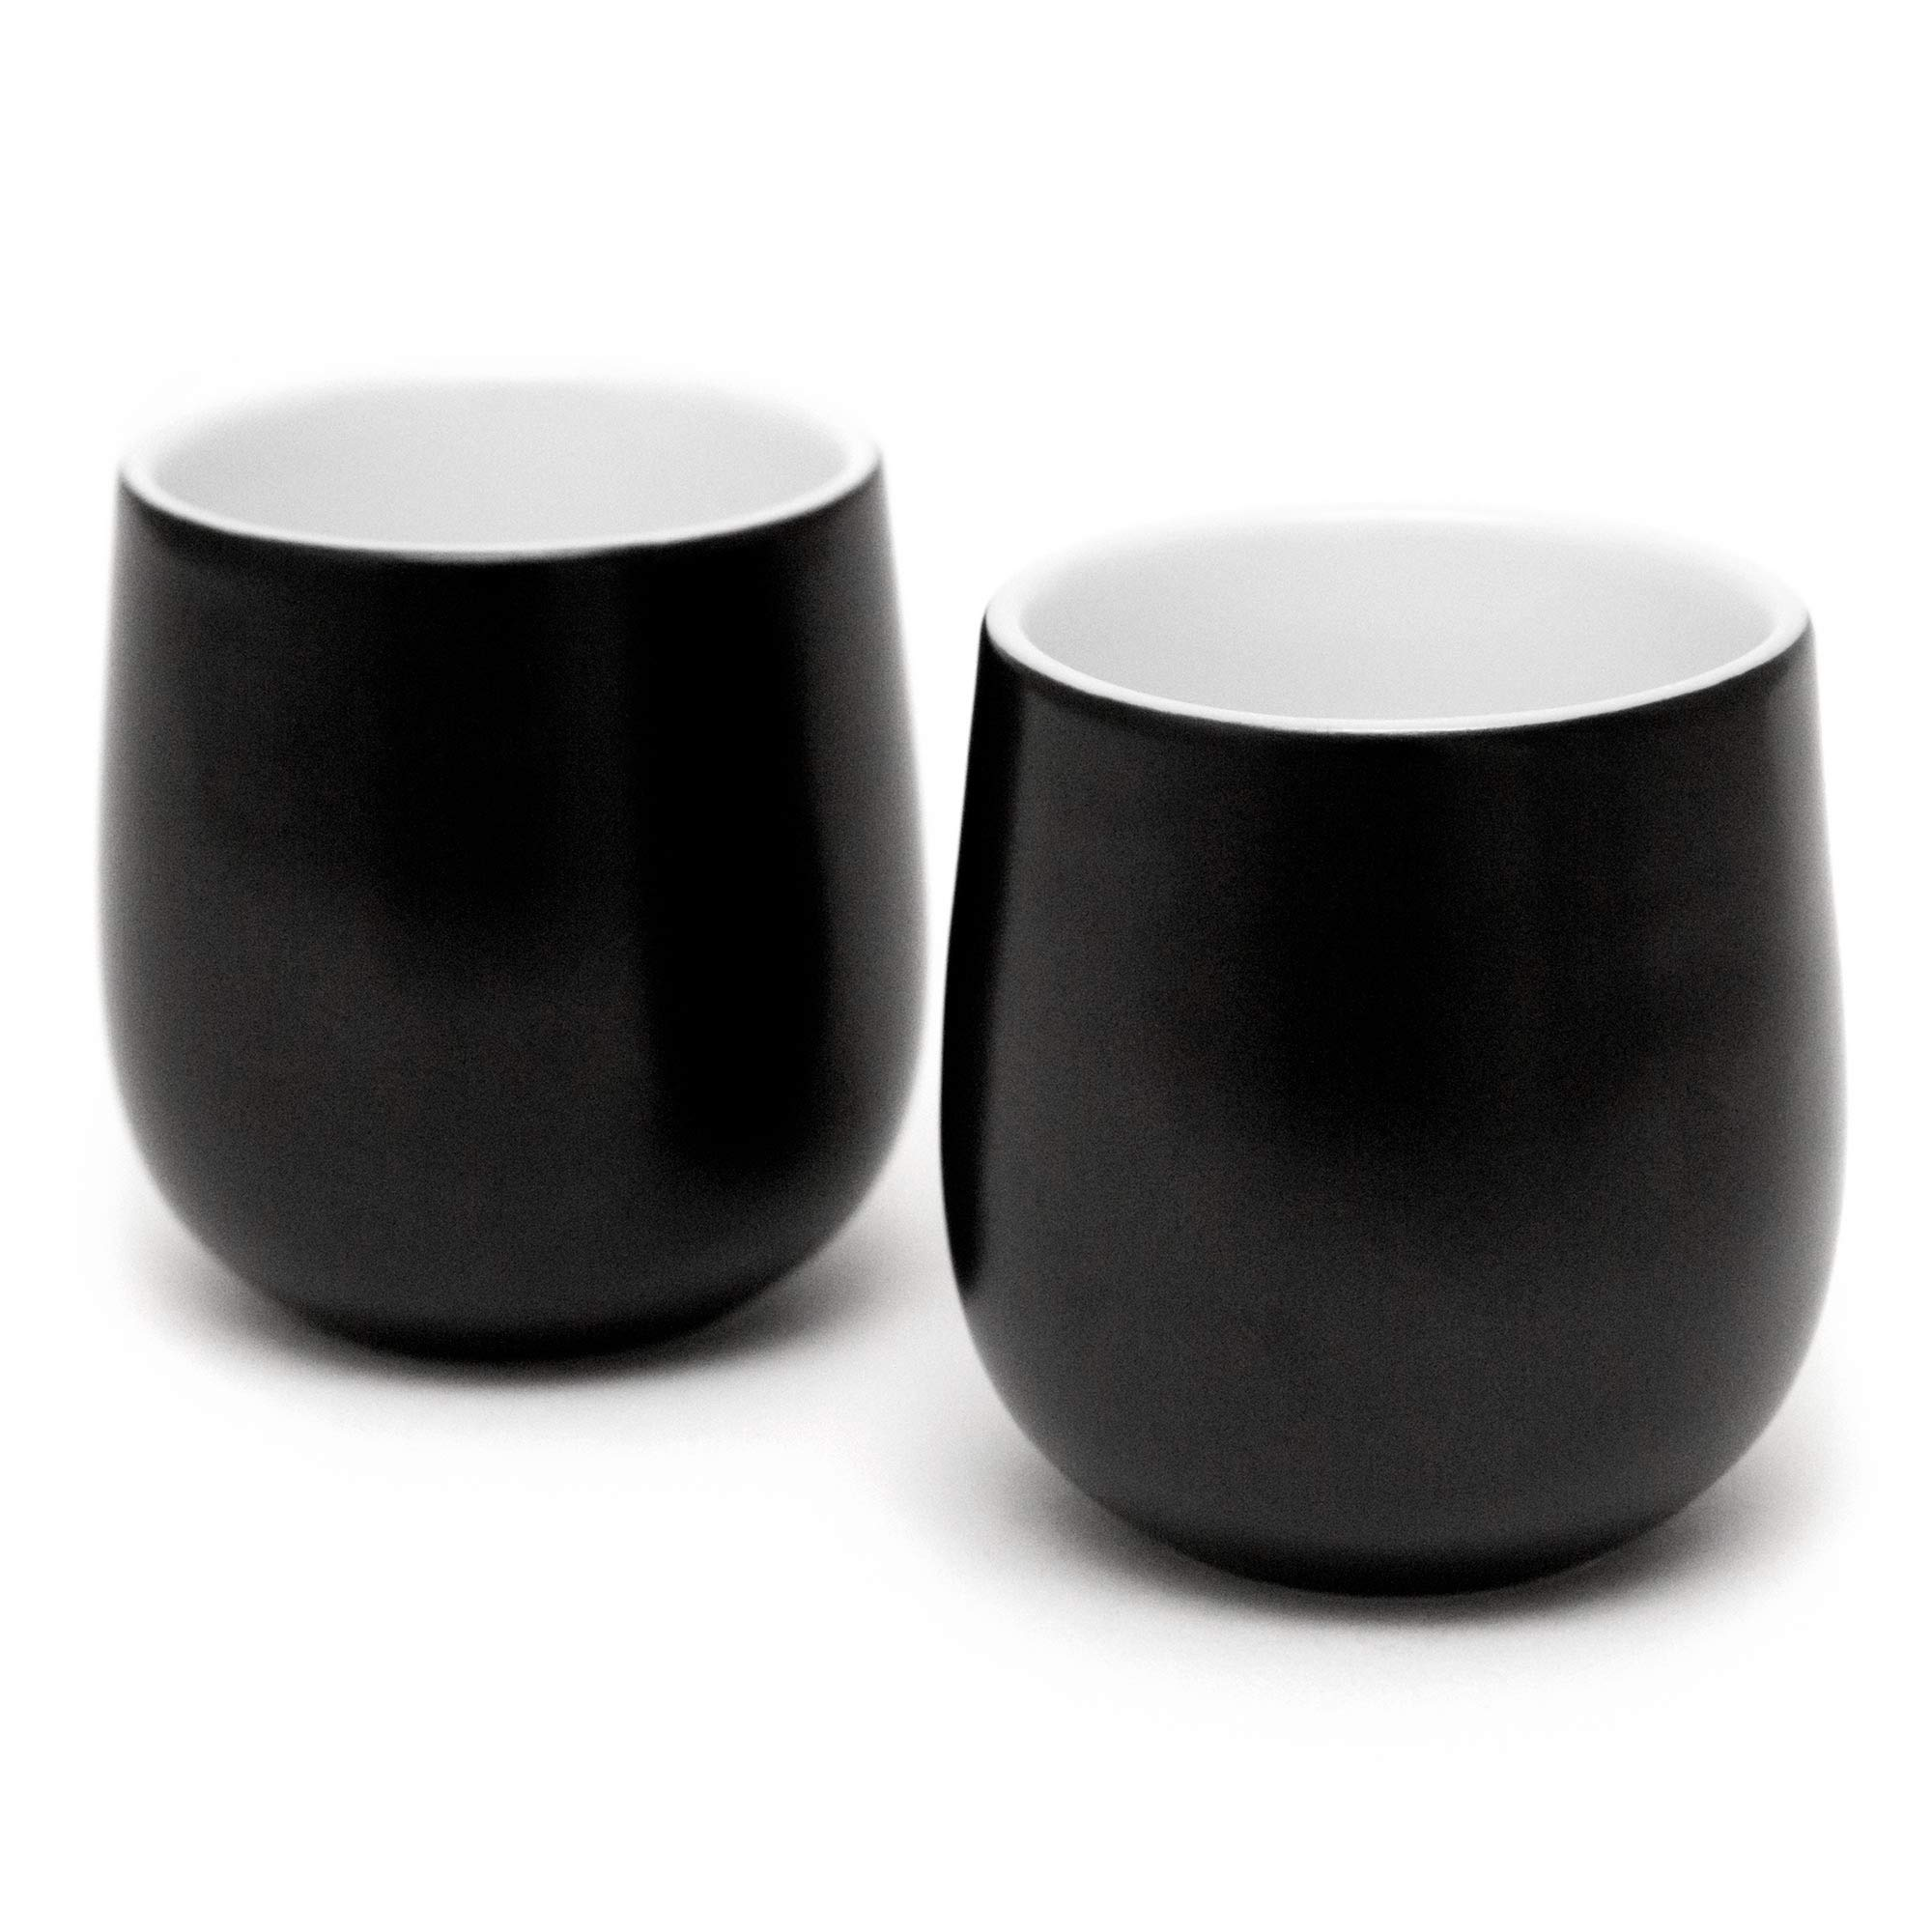 Double Walled Espresso Cups, Dobbelt Set of 2, 2 Ounce Black - Insulated Ceramic Cups for Latte, Cappuccino, Tea - Modern, Contemporary, Art Deco Design - Box Set, by Kop & Hagen